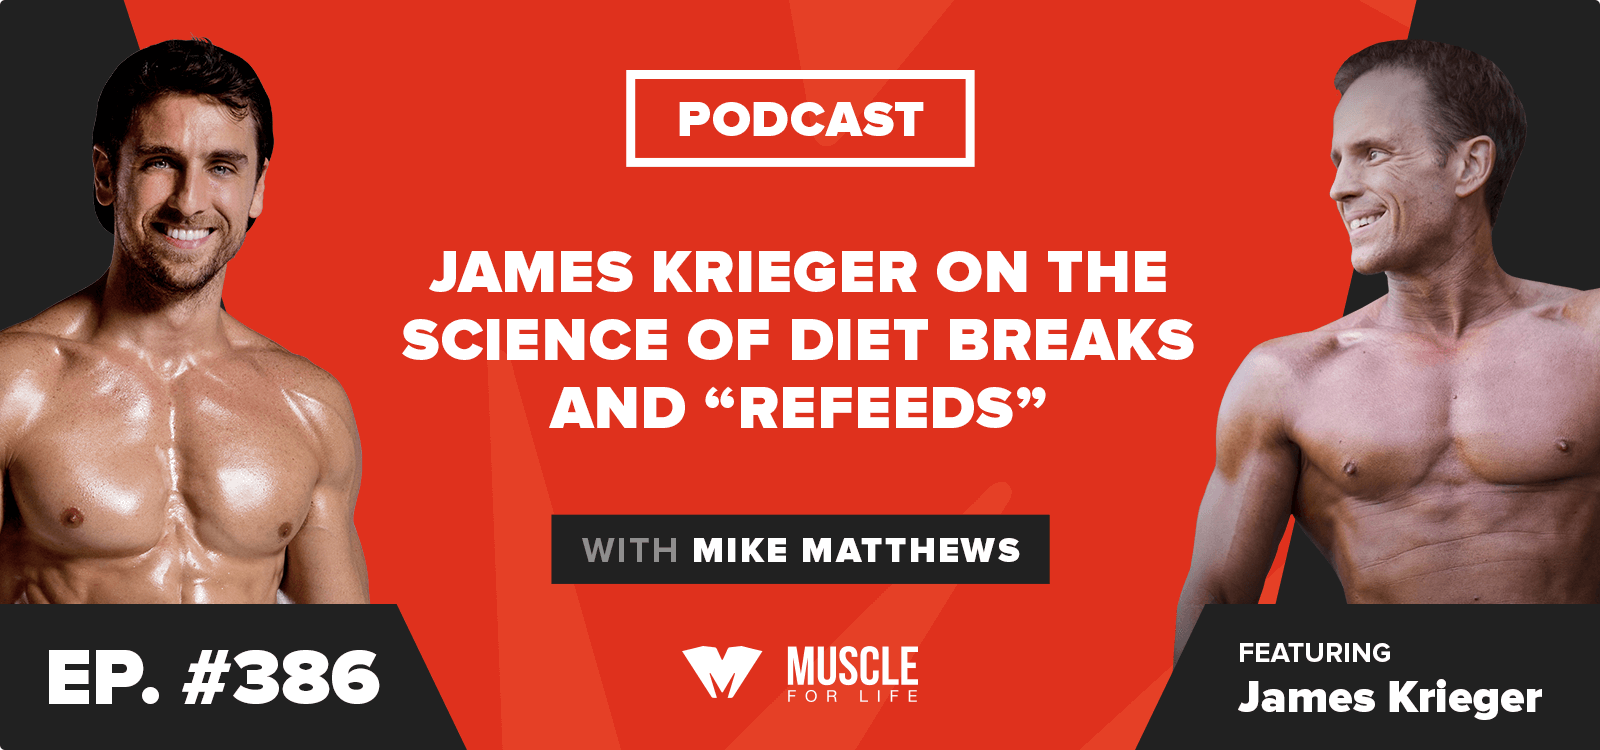 "James Krieger on the Science of Diet Breaks and ""Refeeds"""